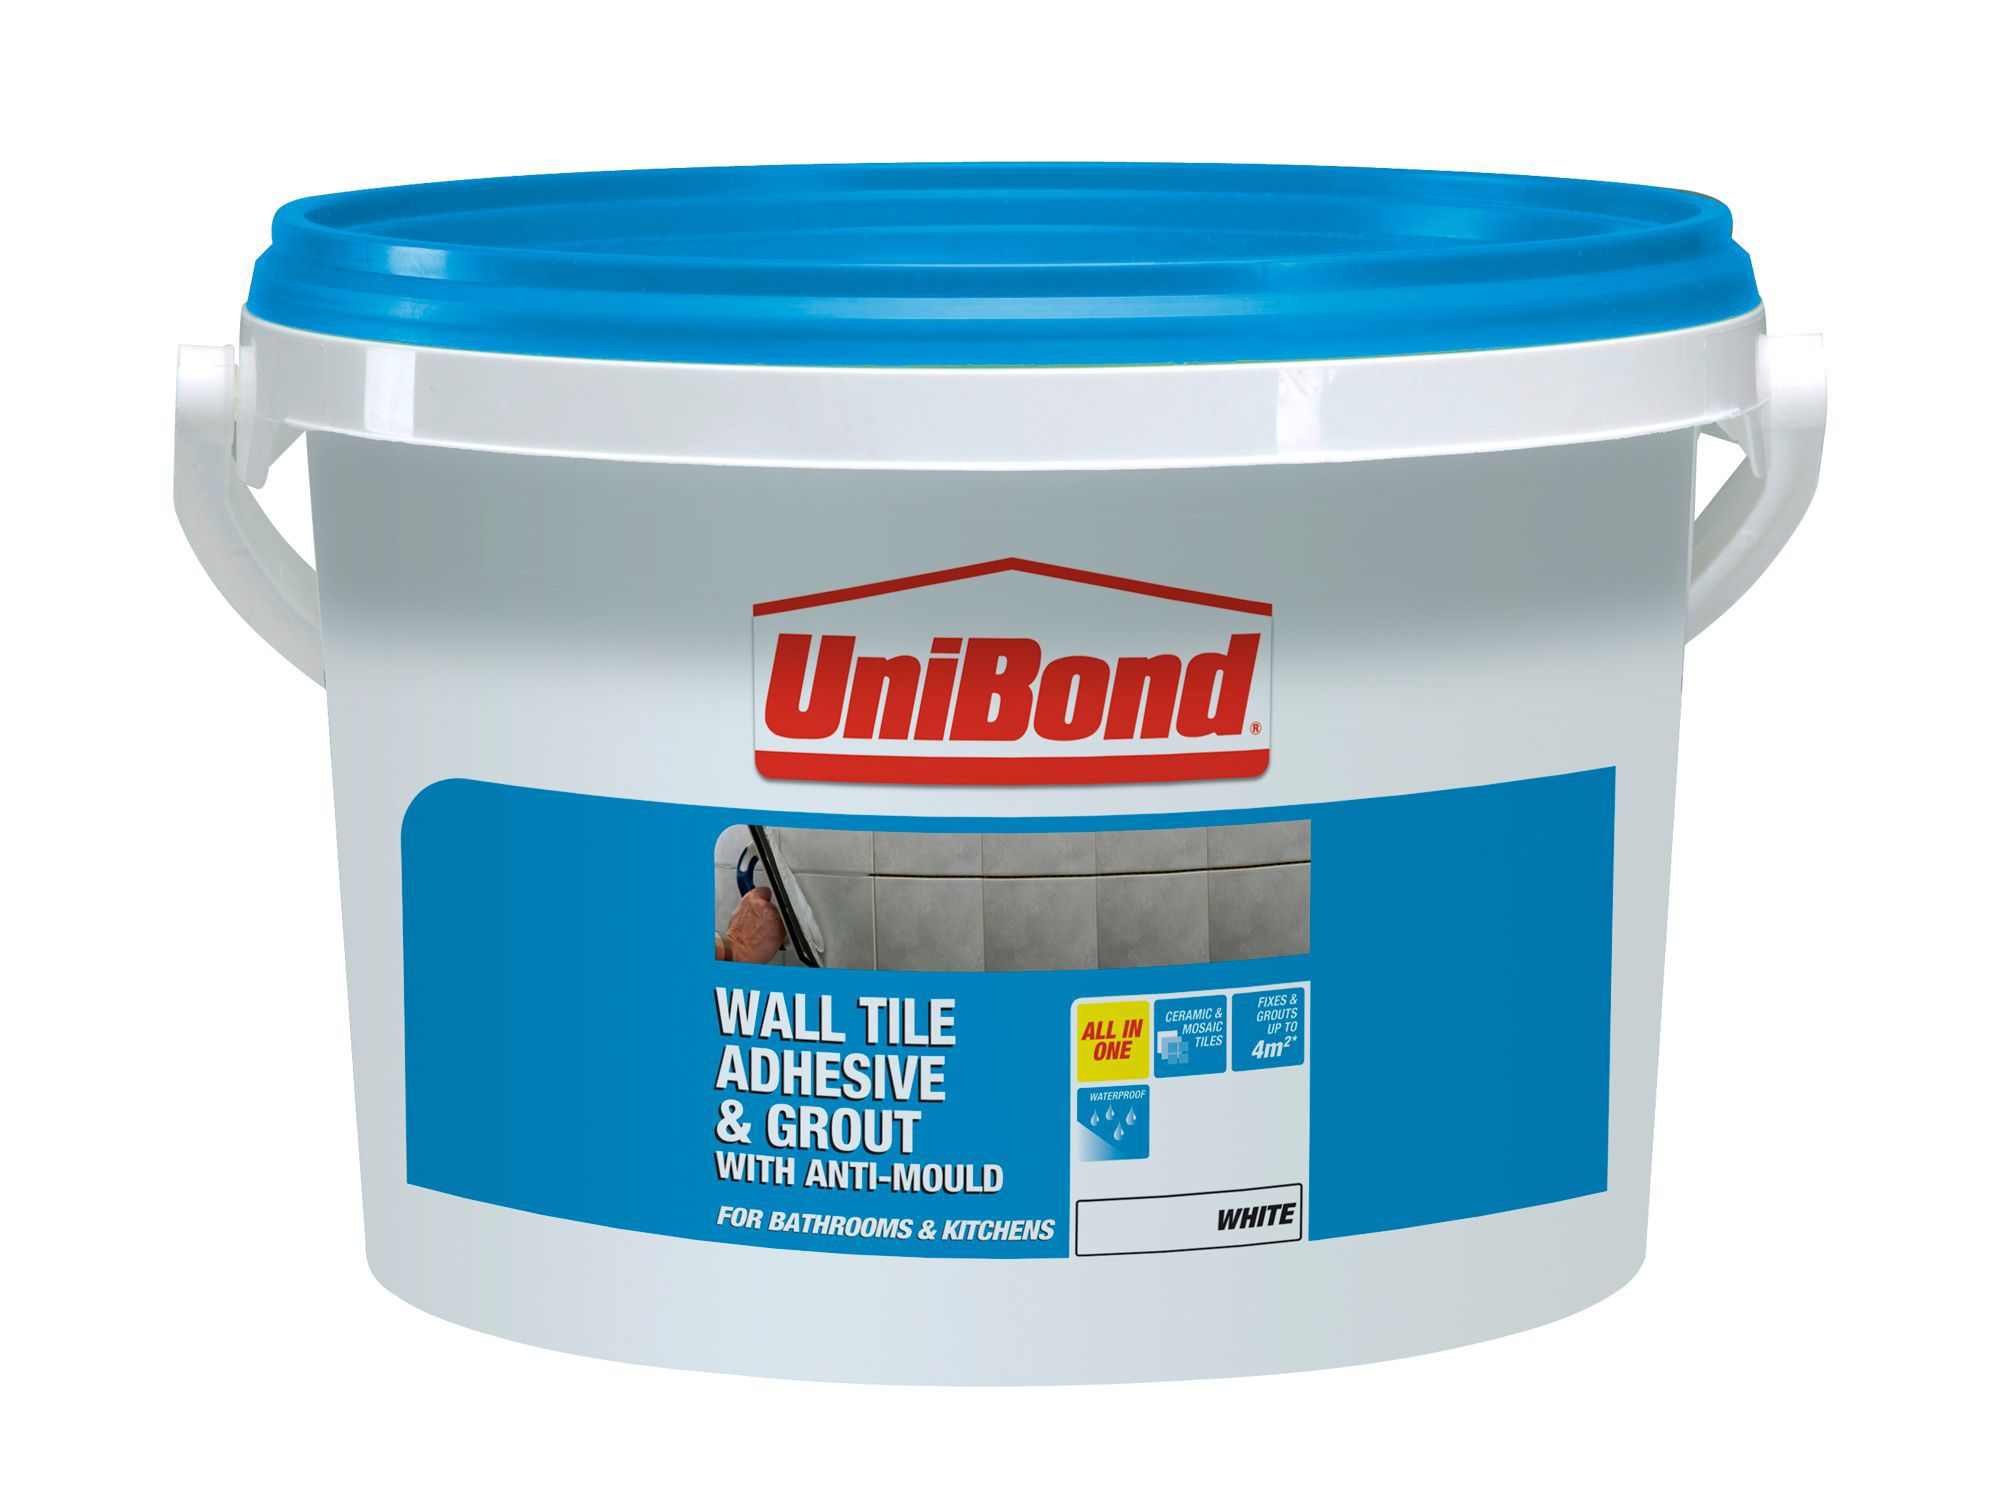 Unibond Ready to Use Wall Tile Adhesive & Grout, White 6.4kg ...